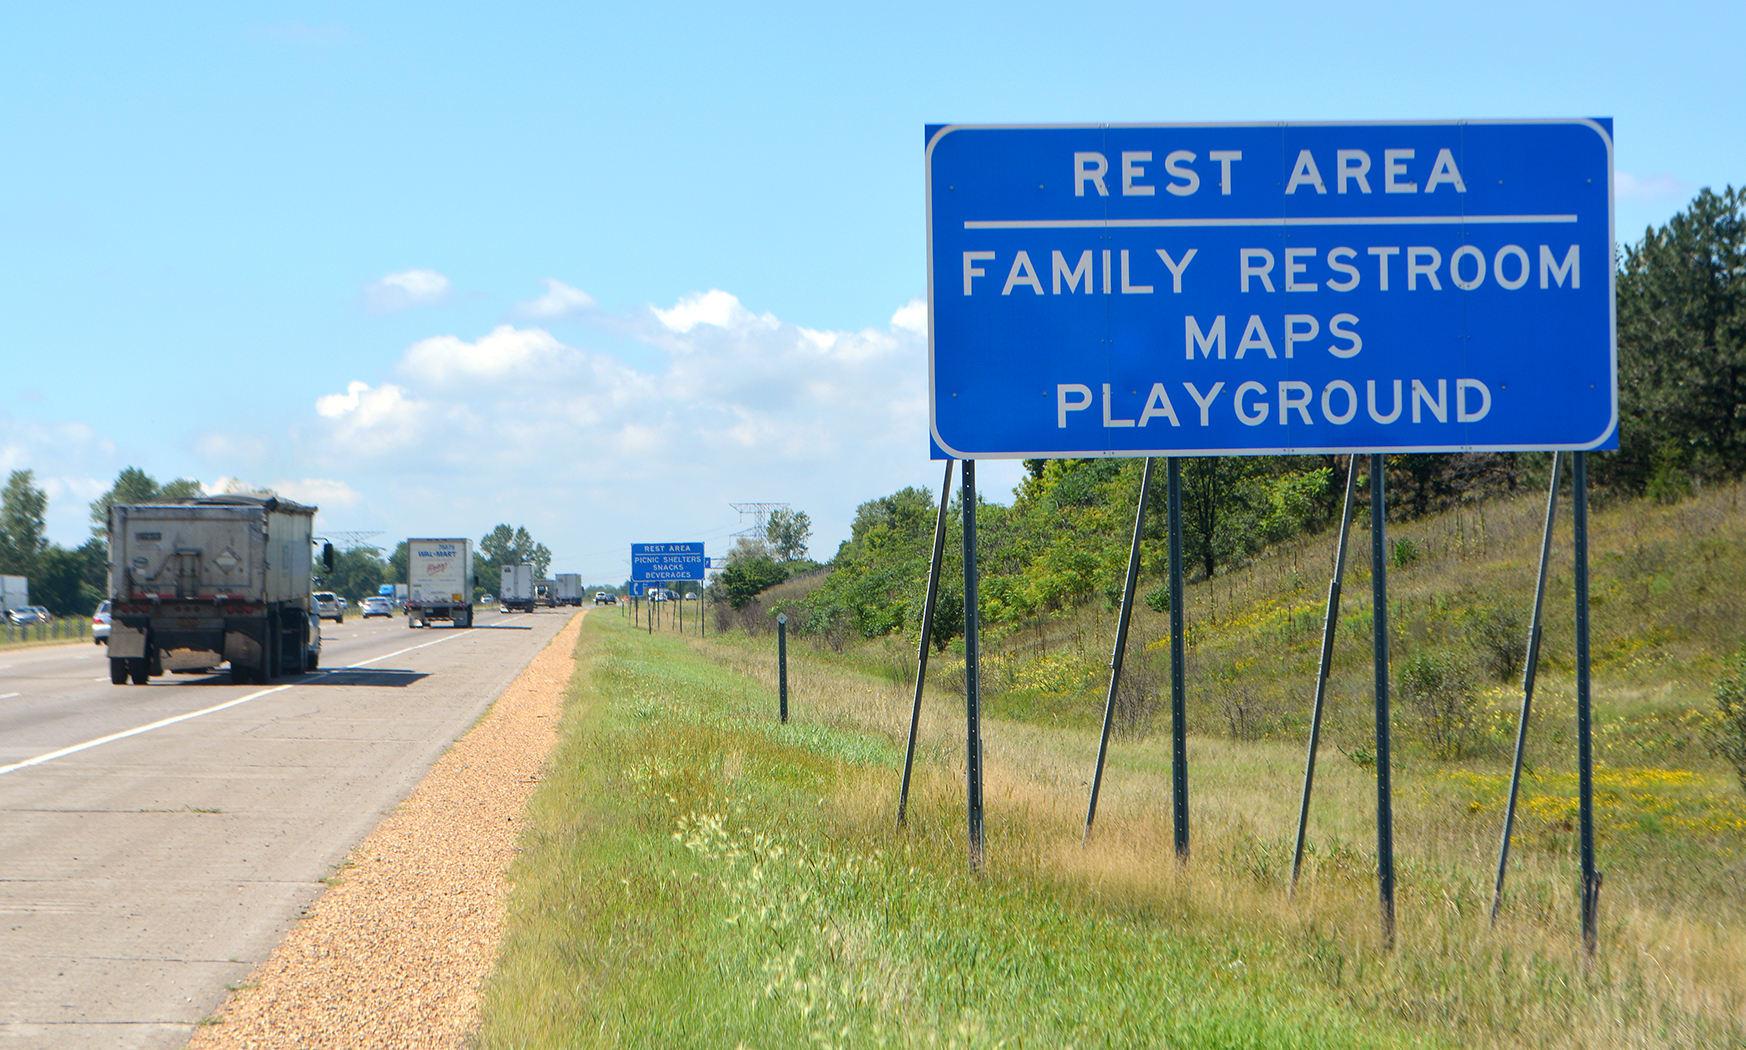 This photo shows a highway sign which has the words Rest Area on the top line, listing ameneties family restroom, maps and playground written underneath that.